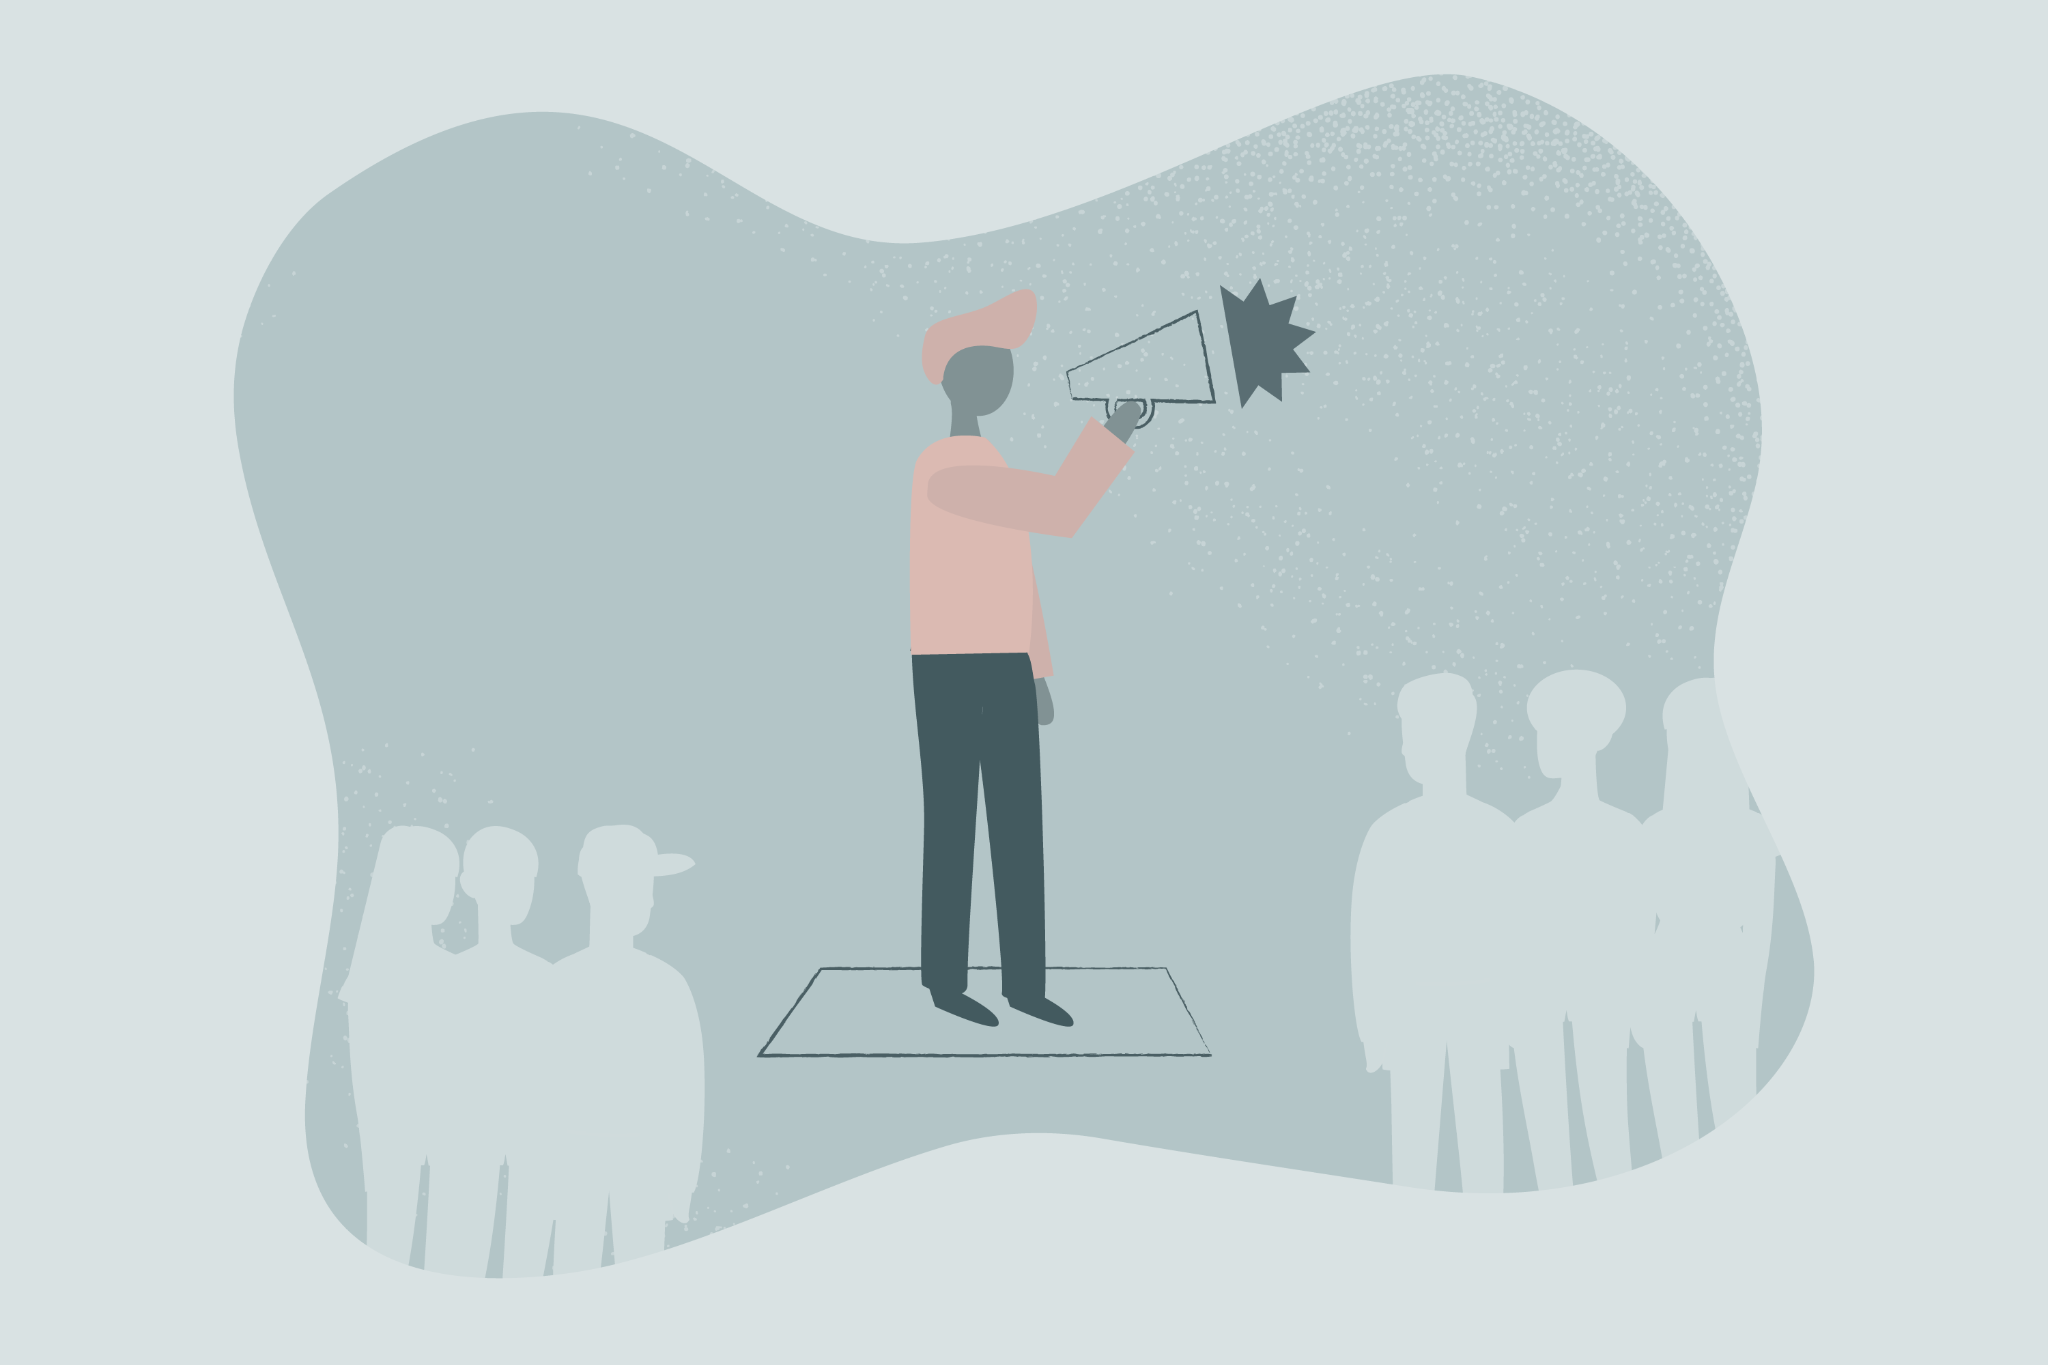 graphic of person talking through megaphone